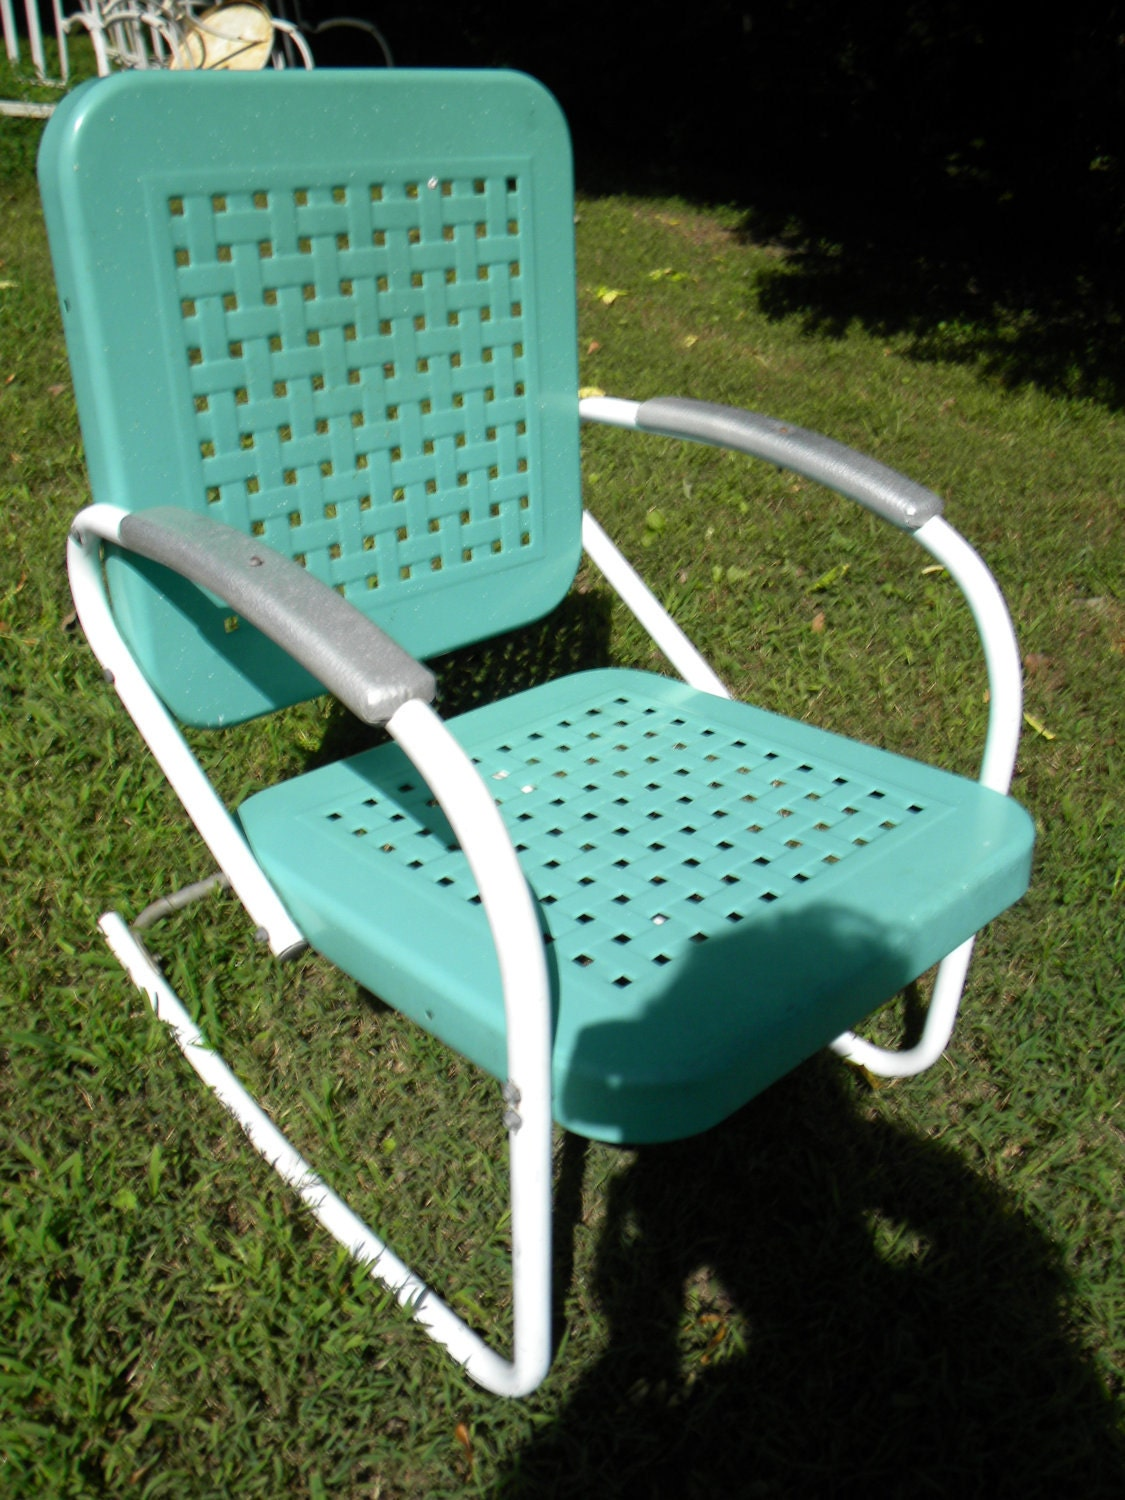 Reserve for sandy vtg 50s 60s retro outdoor metal lawn patio Metal patio furniture vintage